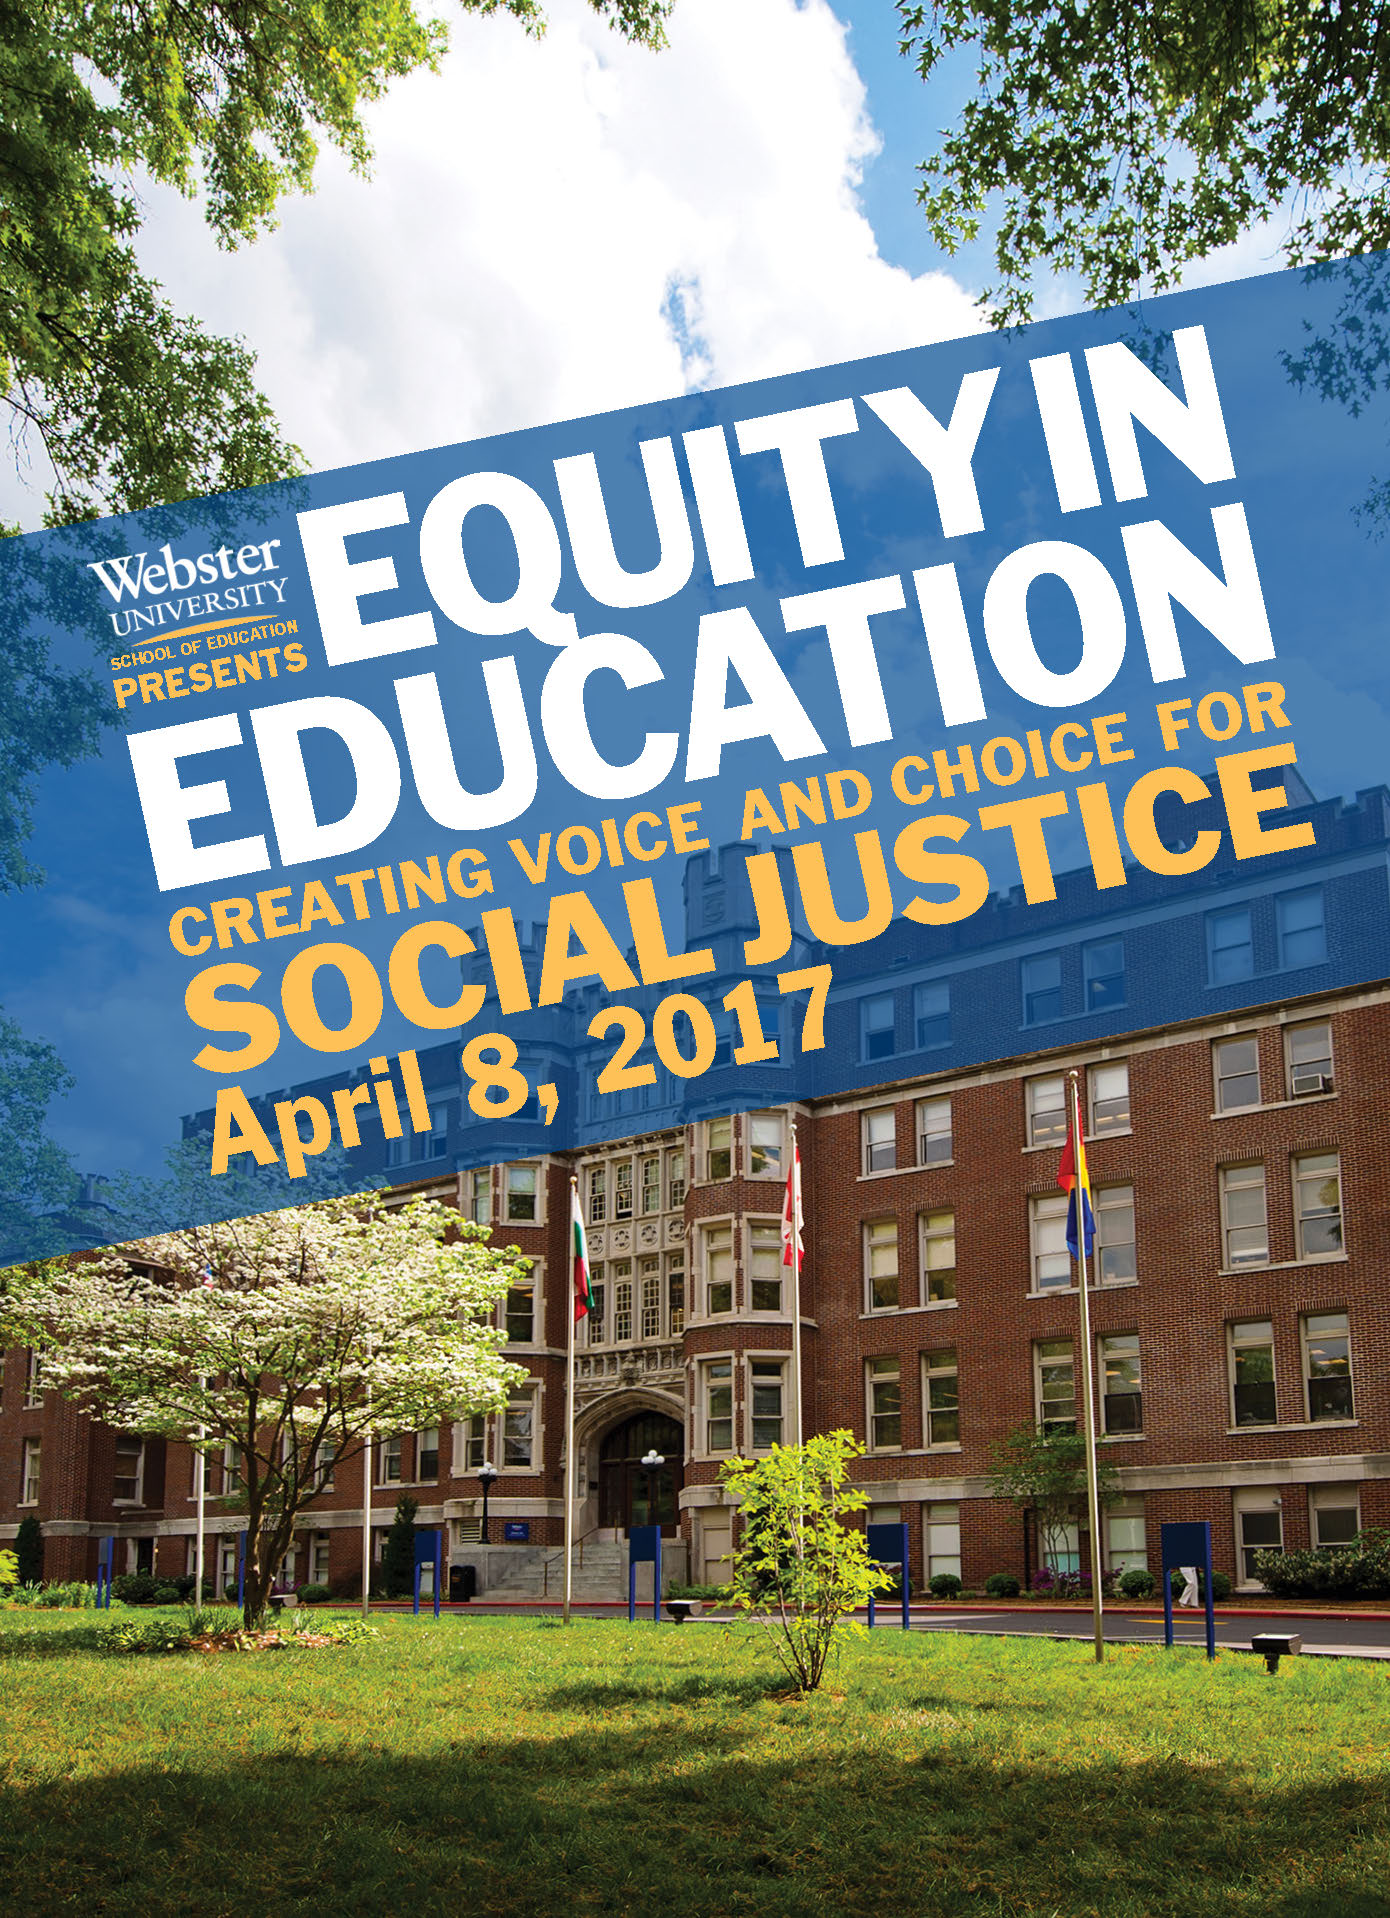 School of Education Conference Flyer Concept